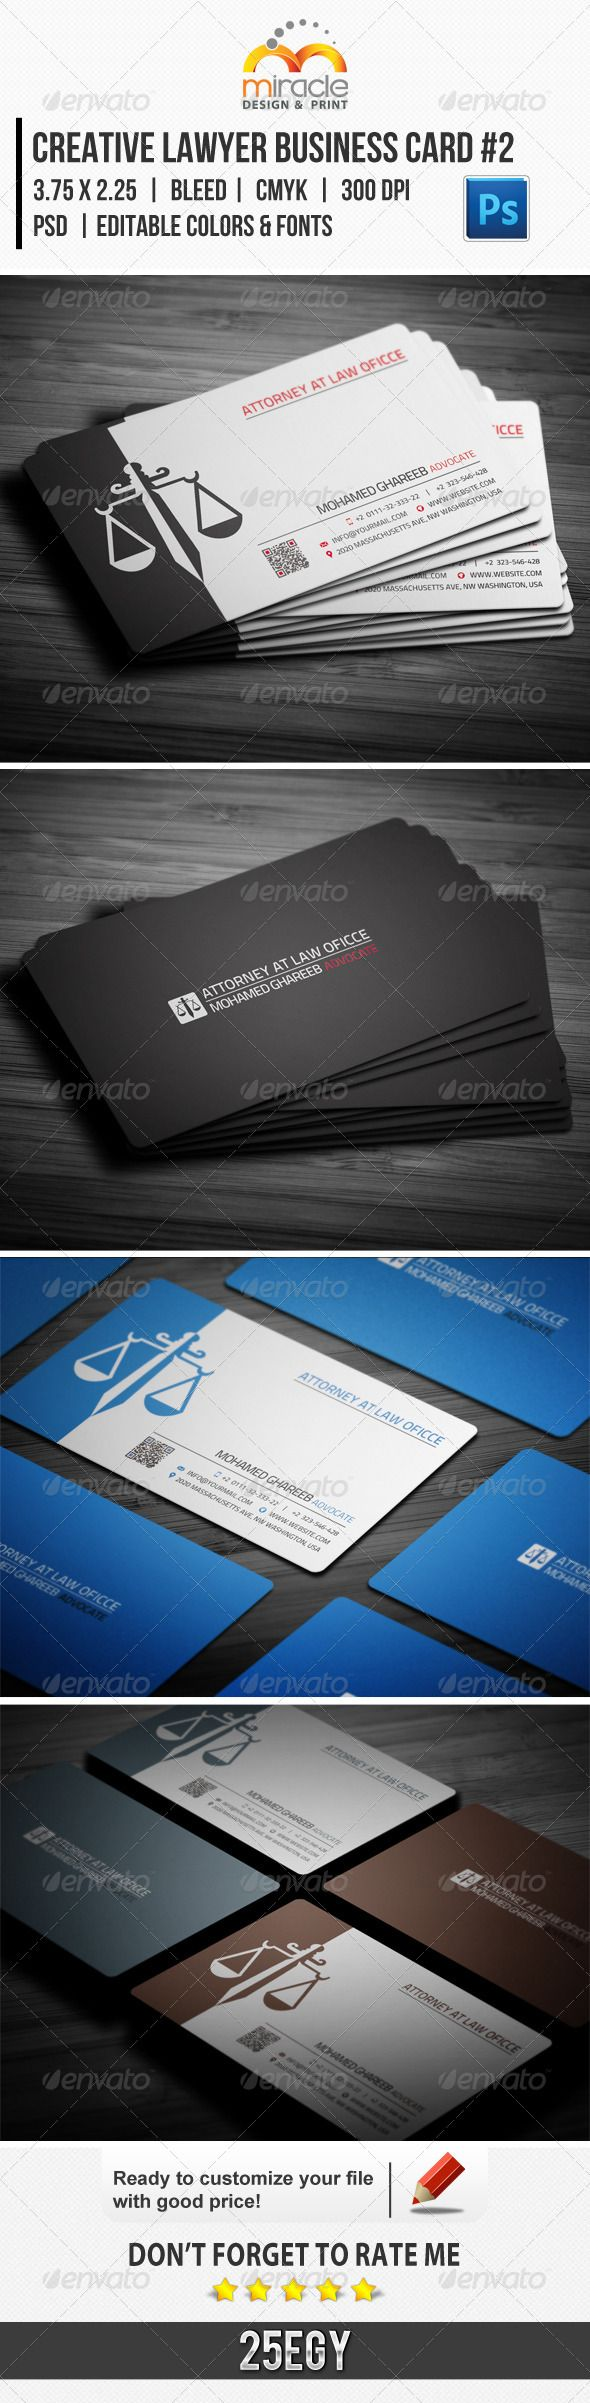 10 Best Court Images On Pinterest Lawyer Logo Business Cards And